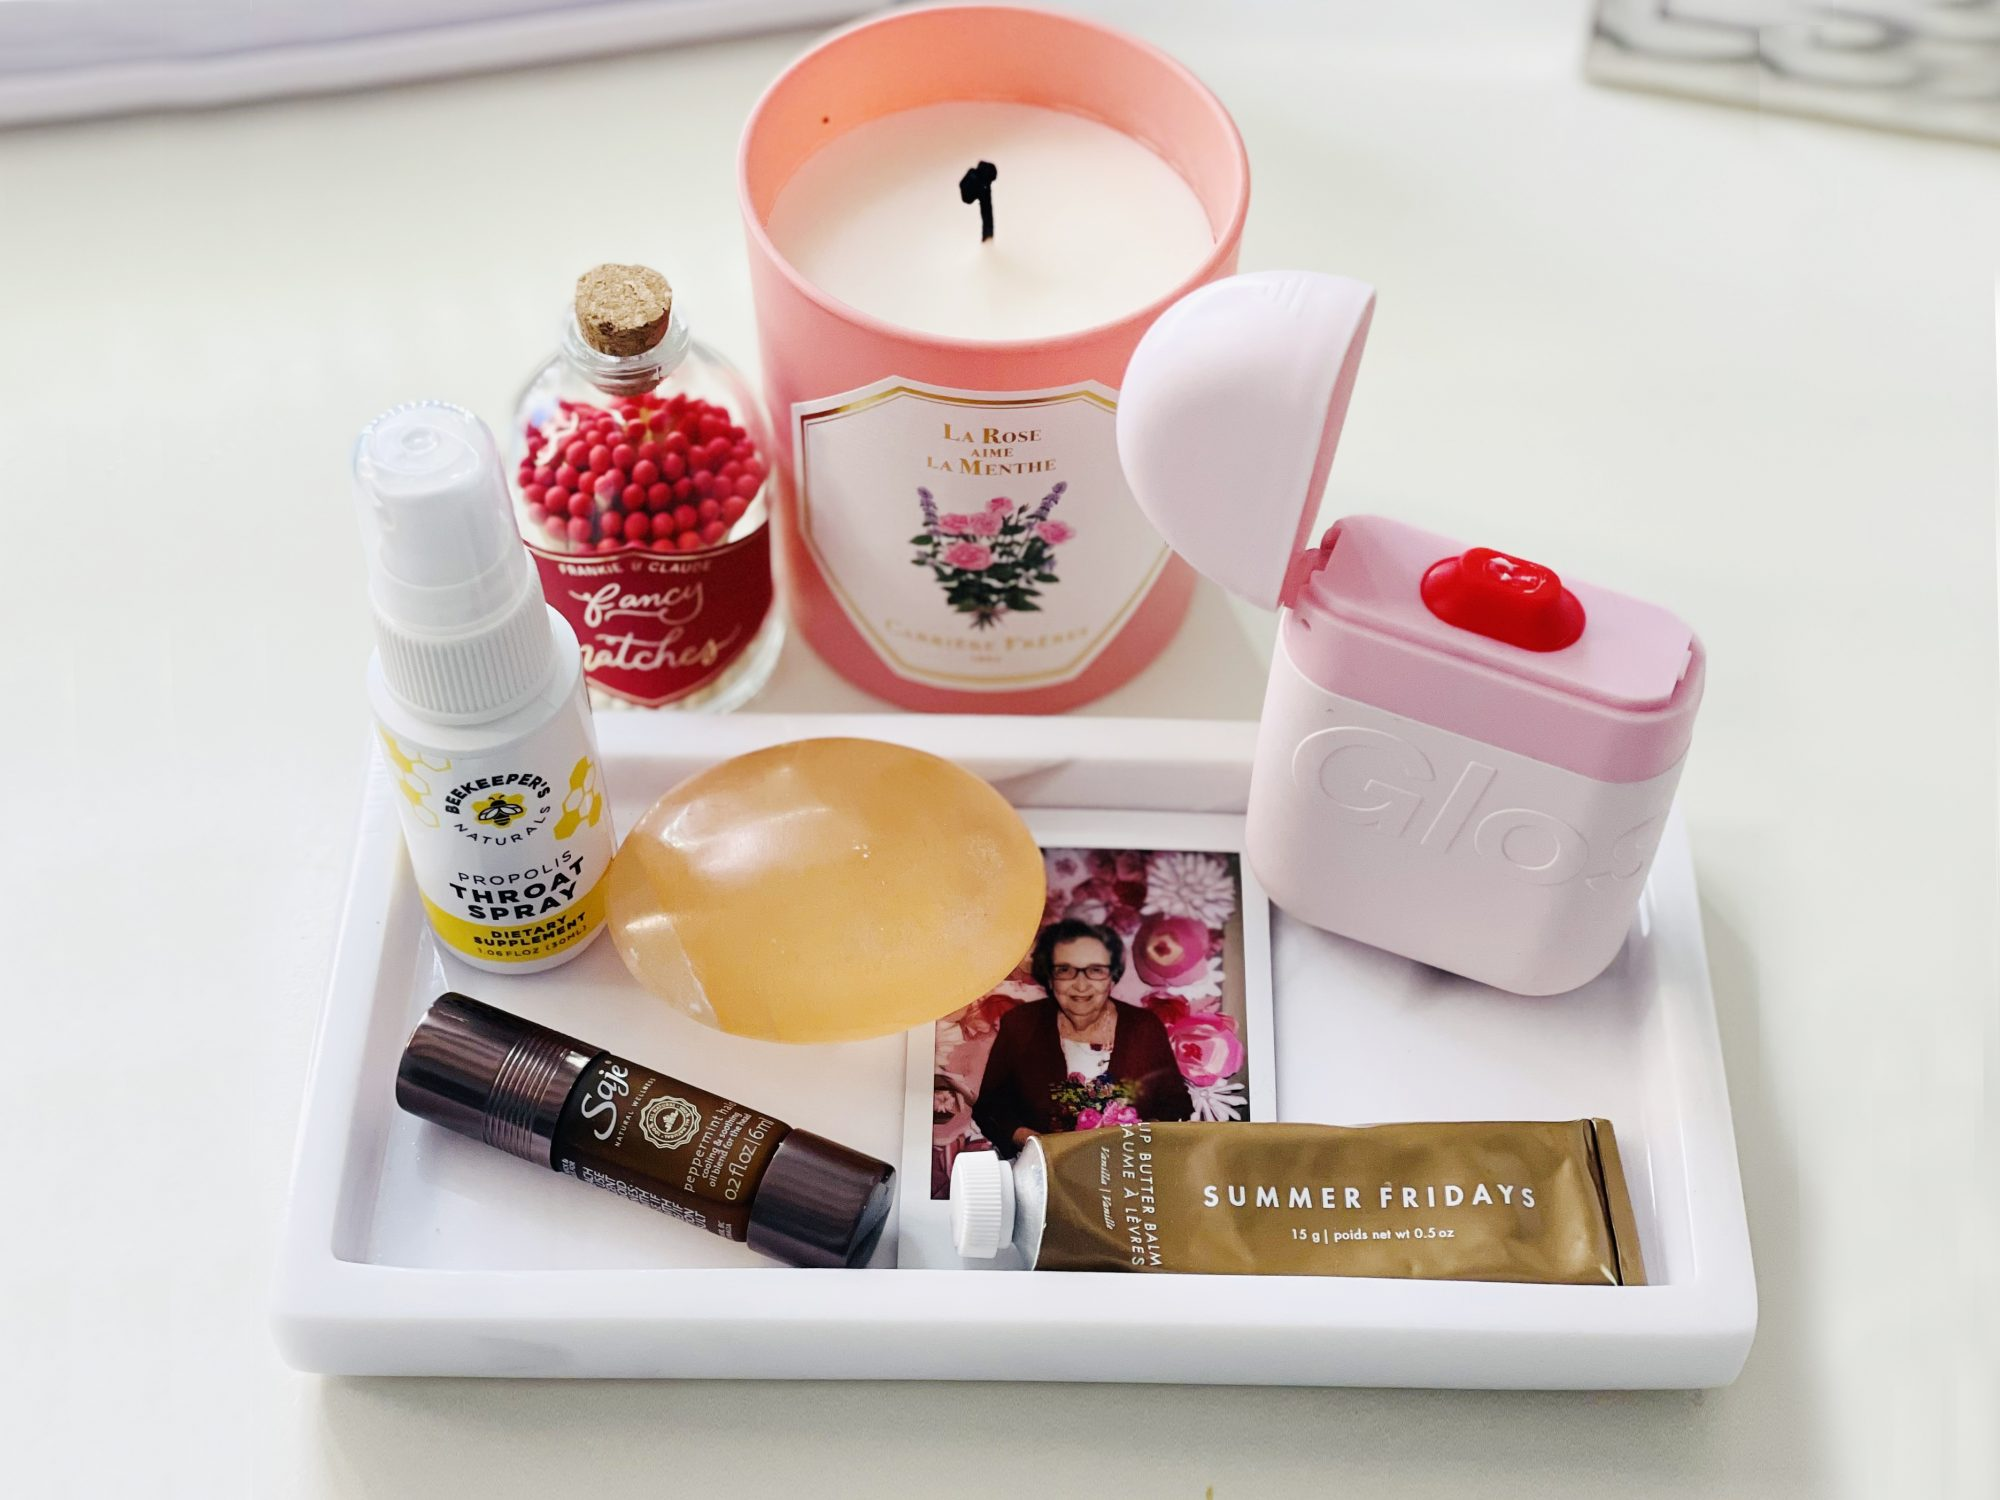 Real Simple beauty director's wfh-desk-essentials on a tray